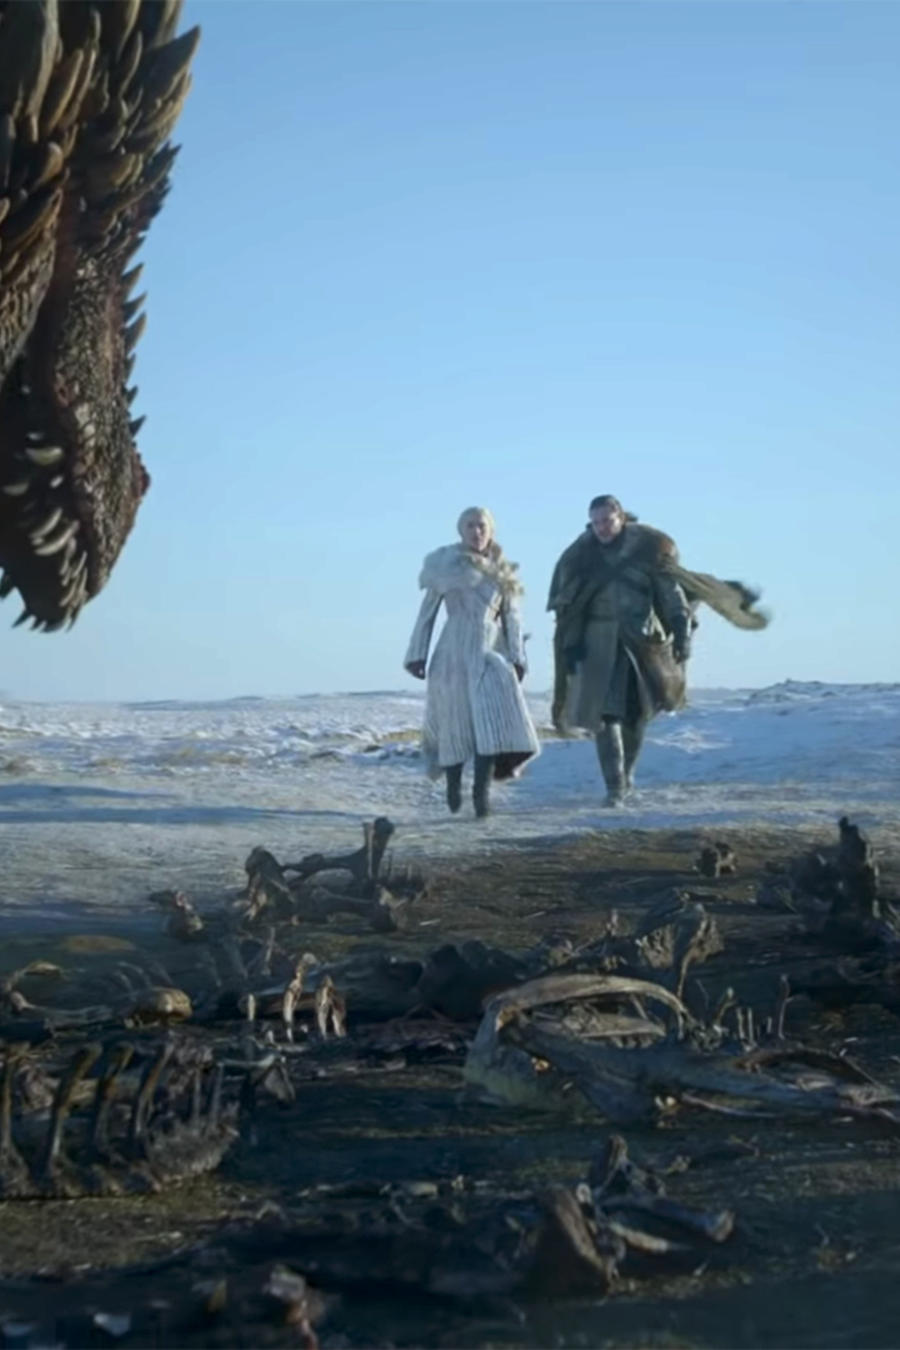 Game of Thrones trailer screengrab